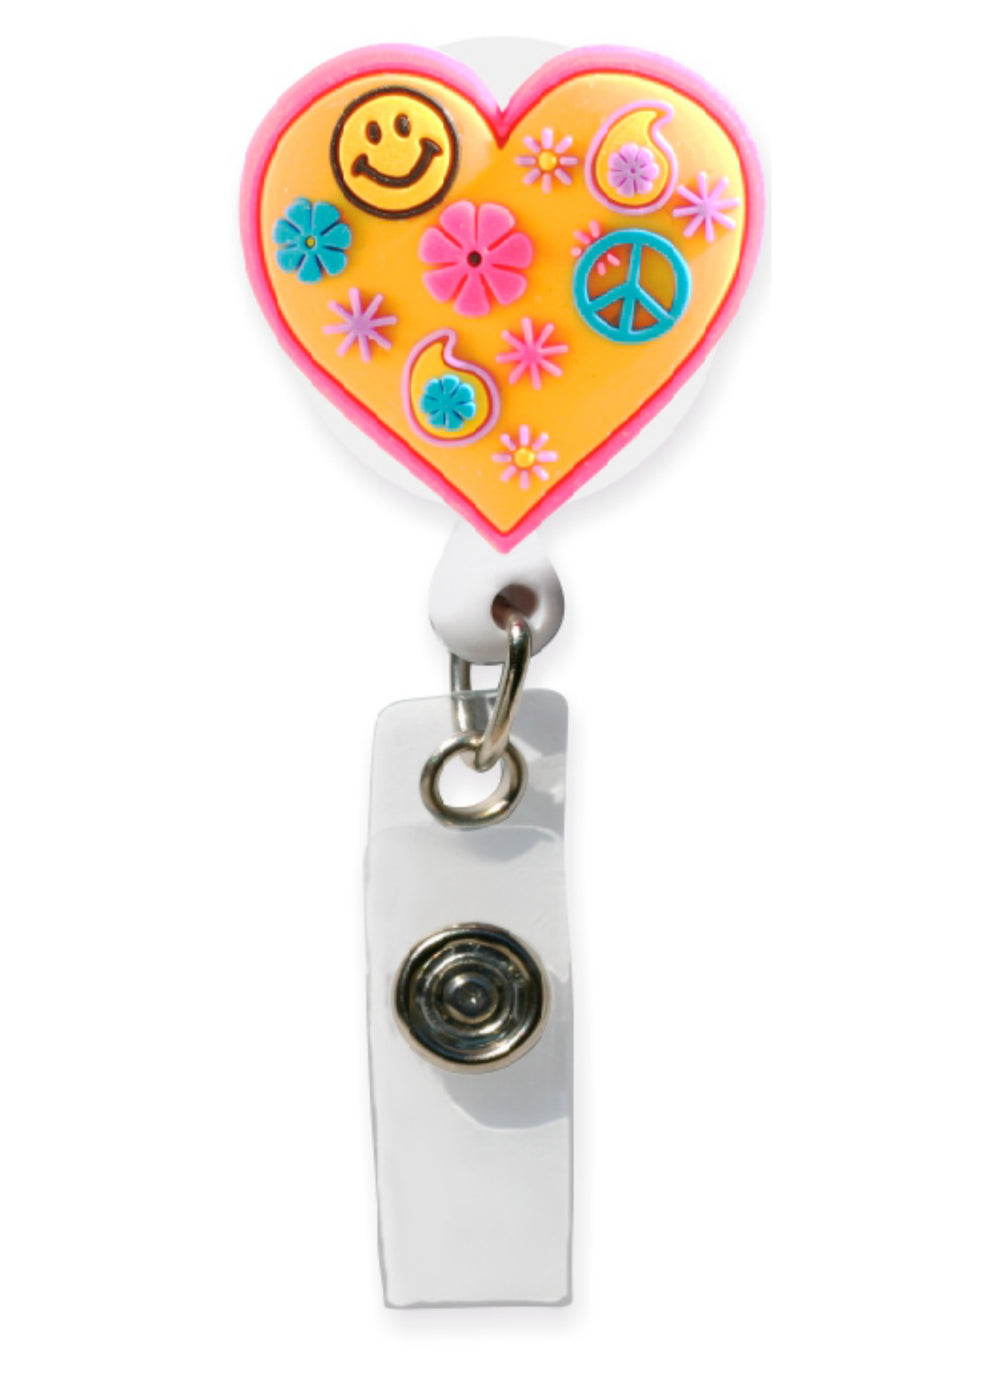 3D Rubber Retractable Badge Reel – Retro Heart